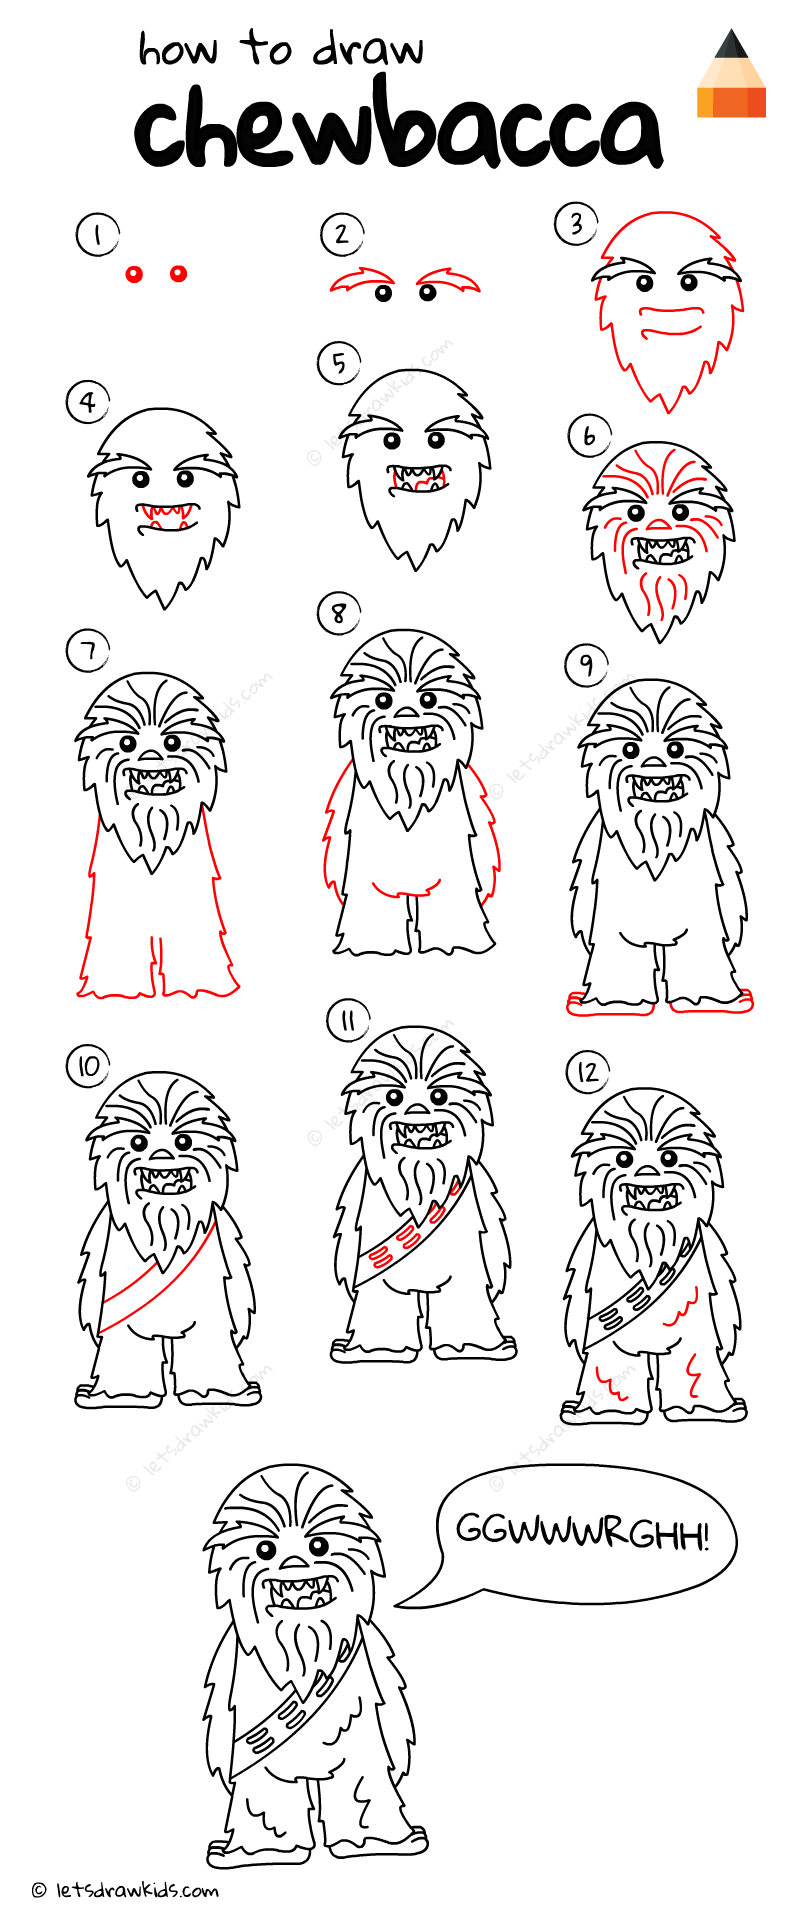 How To Draw Chewbacca From Star Wars Star Wars Drawings